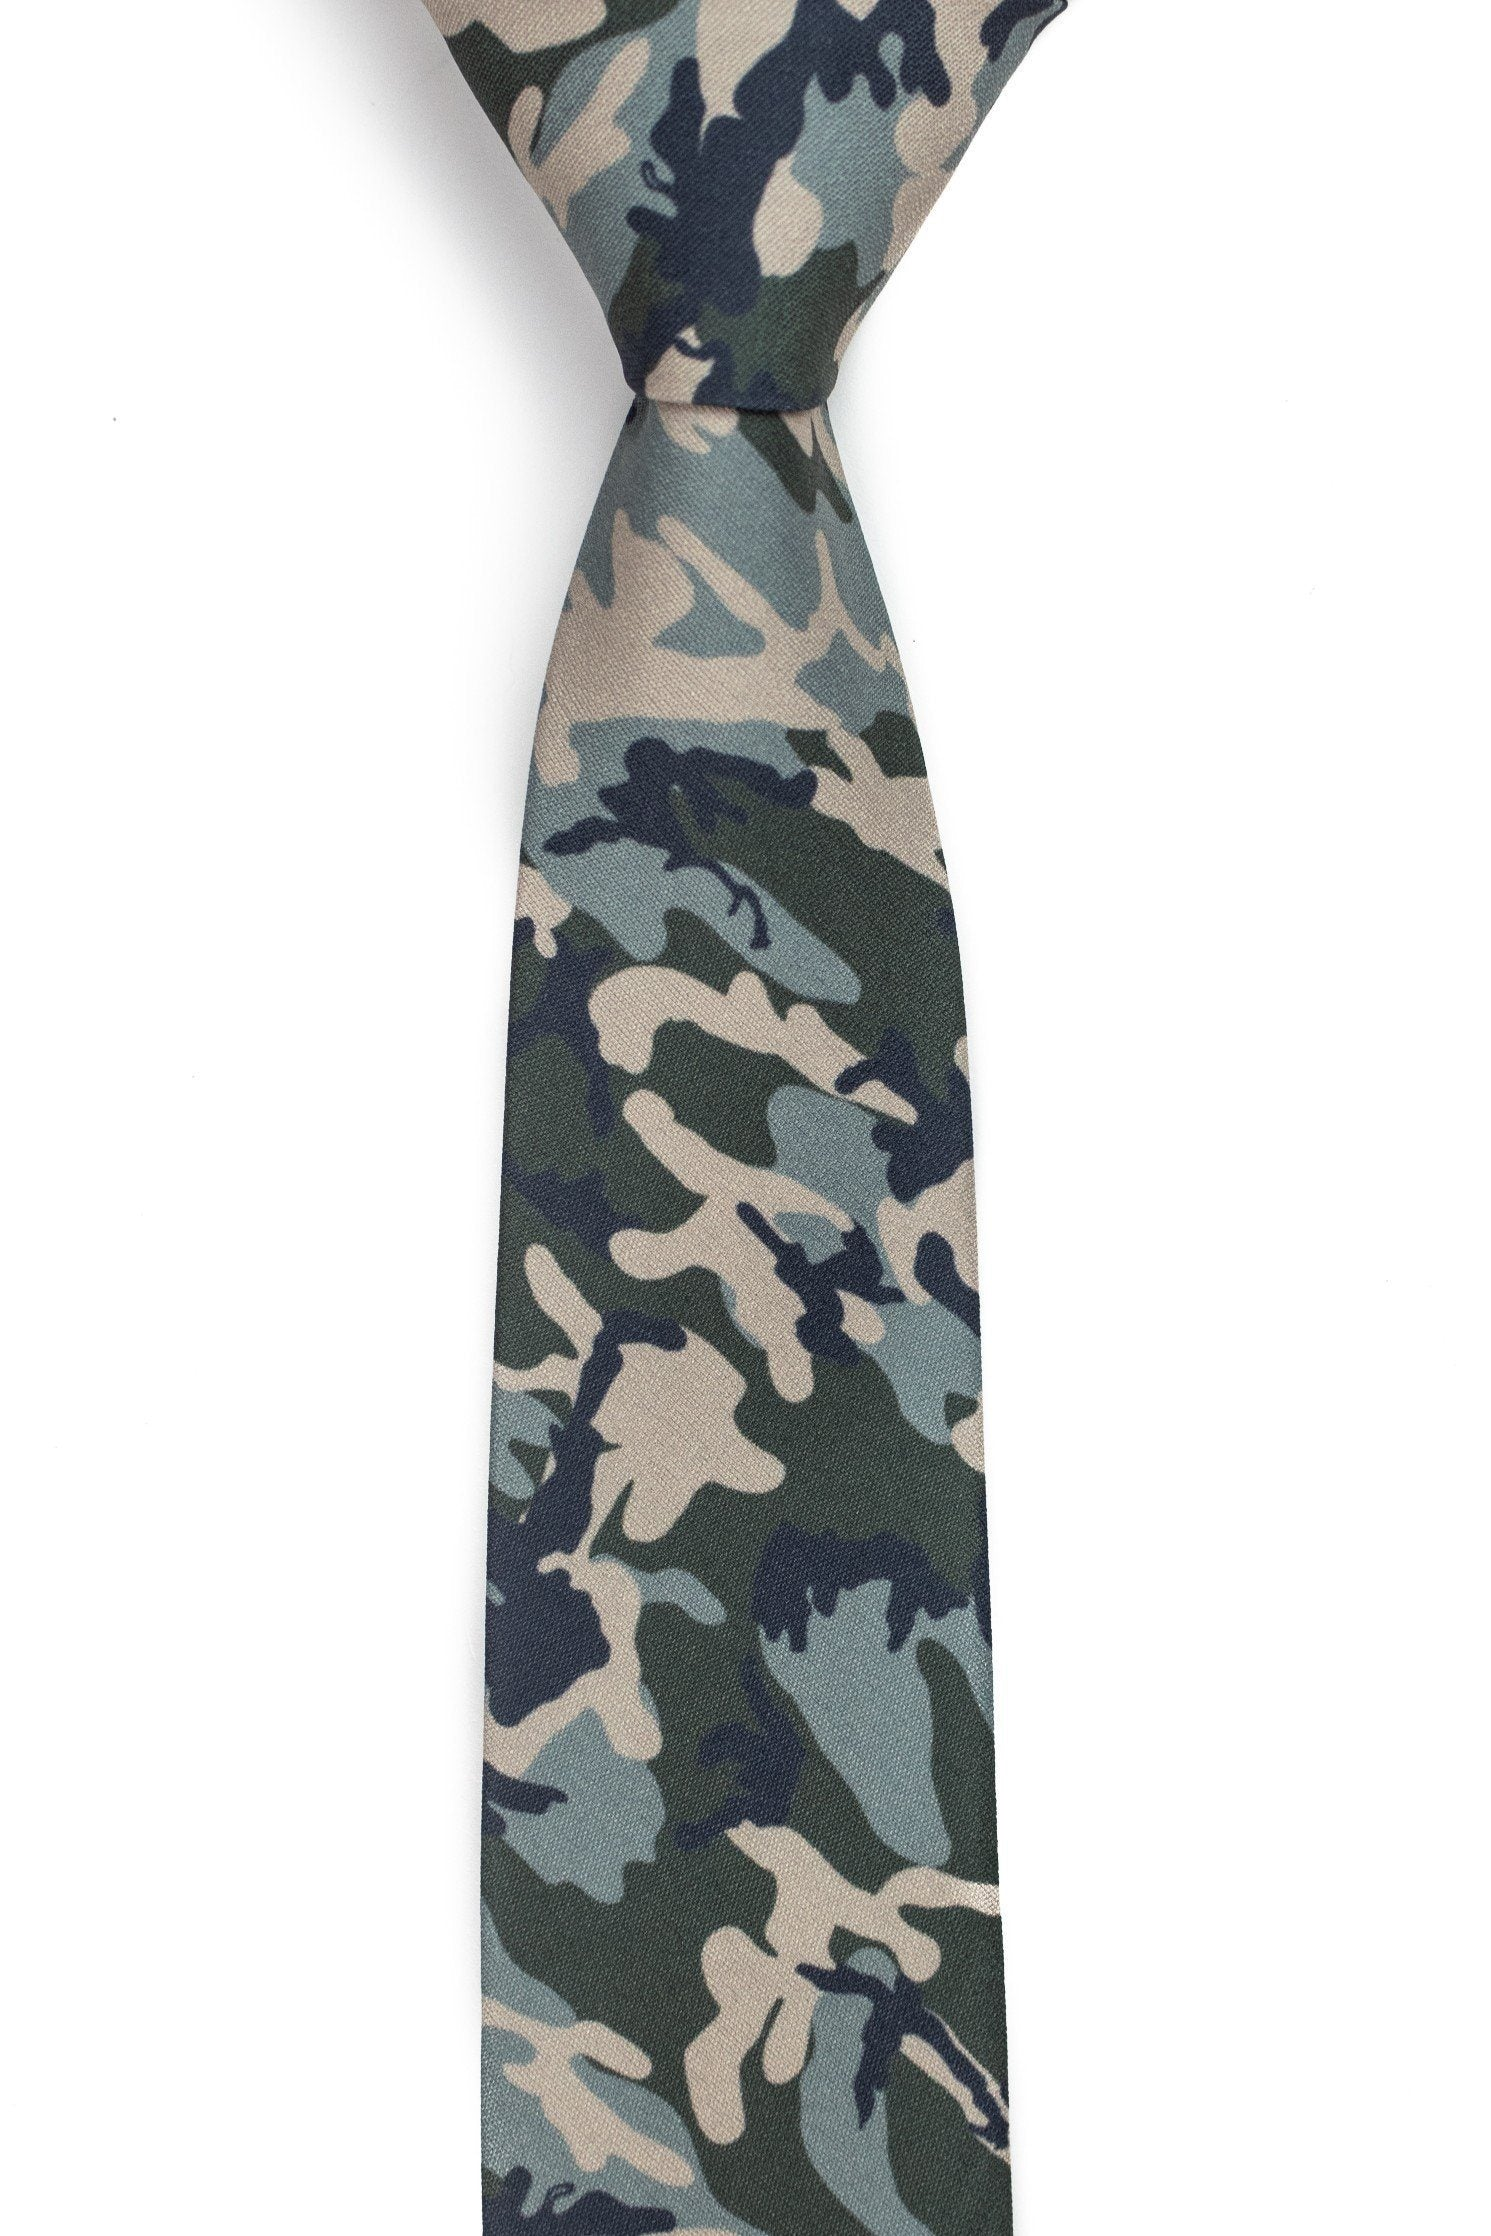 Caliber Camo - Brown, Tan and Green Camo Tie 2